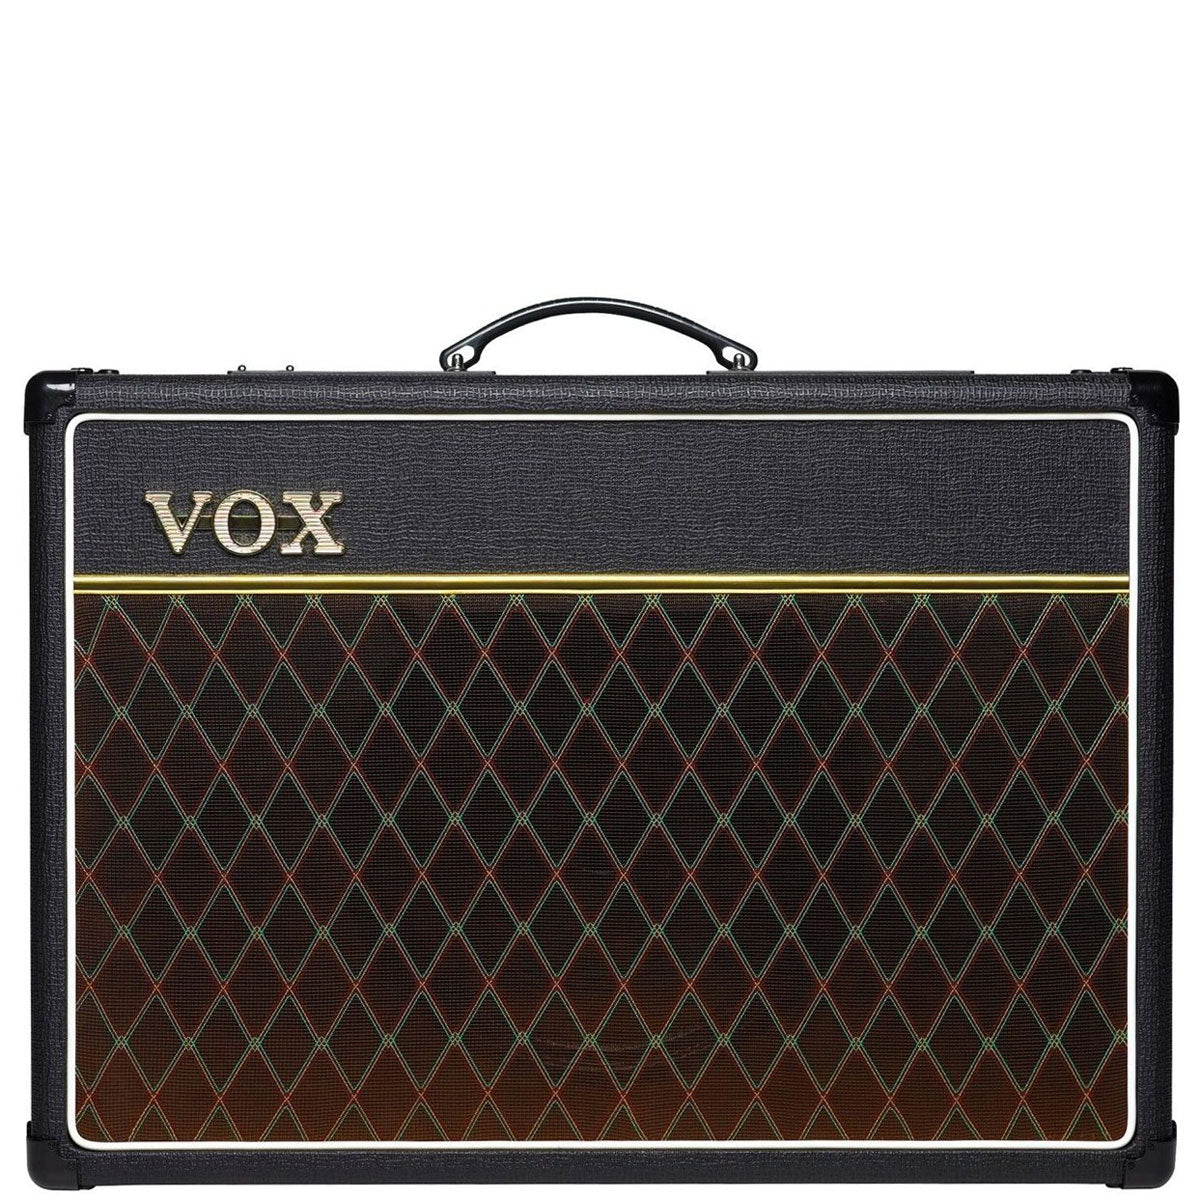 "Vox AC15C1X - Custom Series - 15-watt 1 x 12"""" combo with Celestion Alnico Blue speaker 